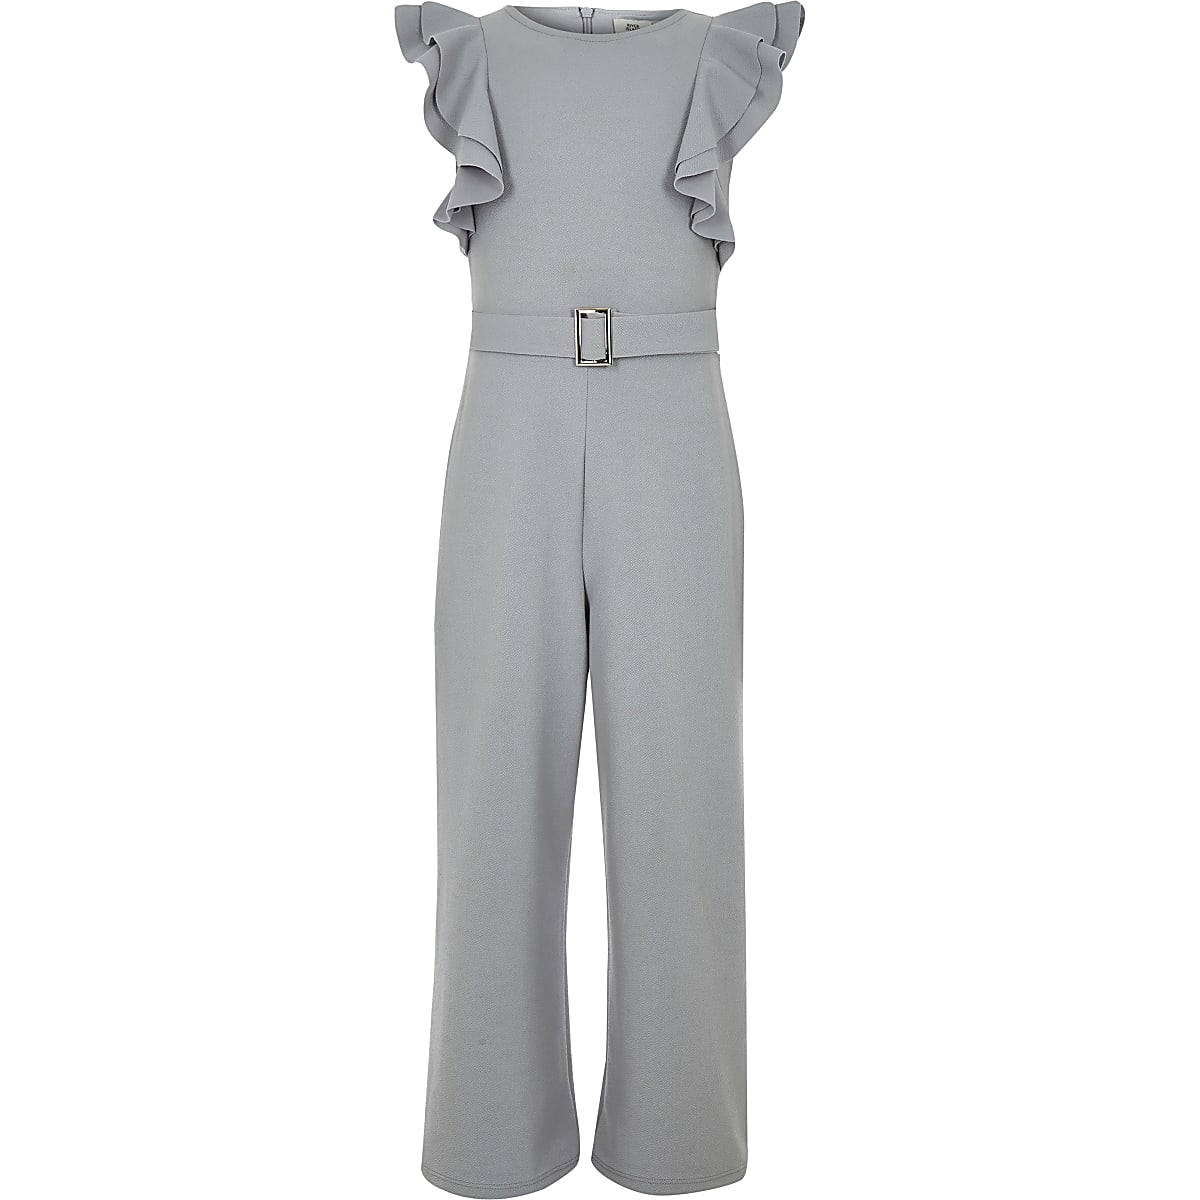 63fb5be9dd8 Girls grey ruffle belted jumpsuit